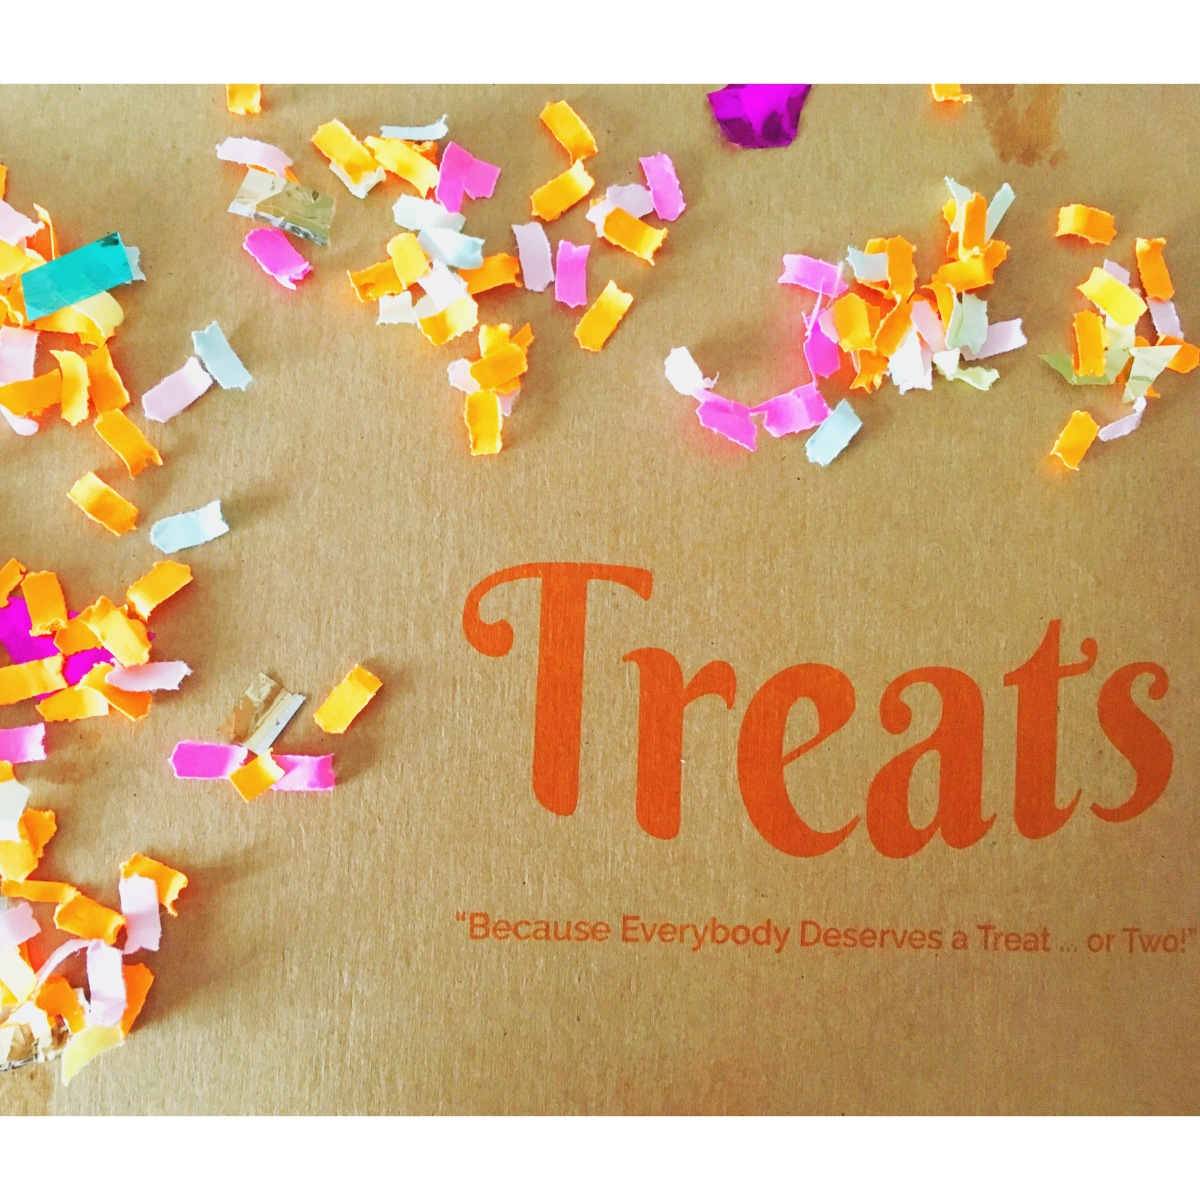 Treats! A sweet subscription box